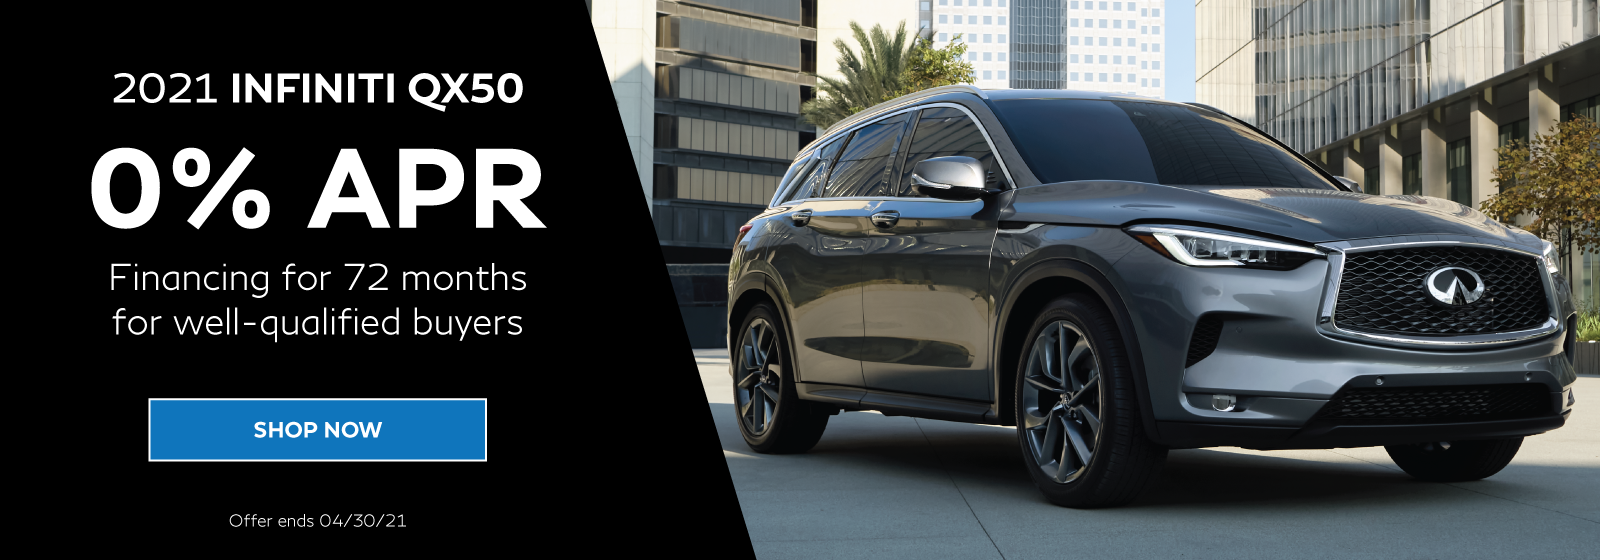 Homepage-Banner-QX50